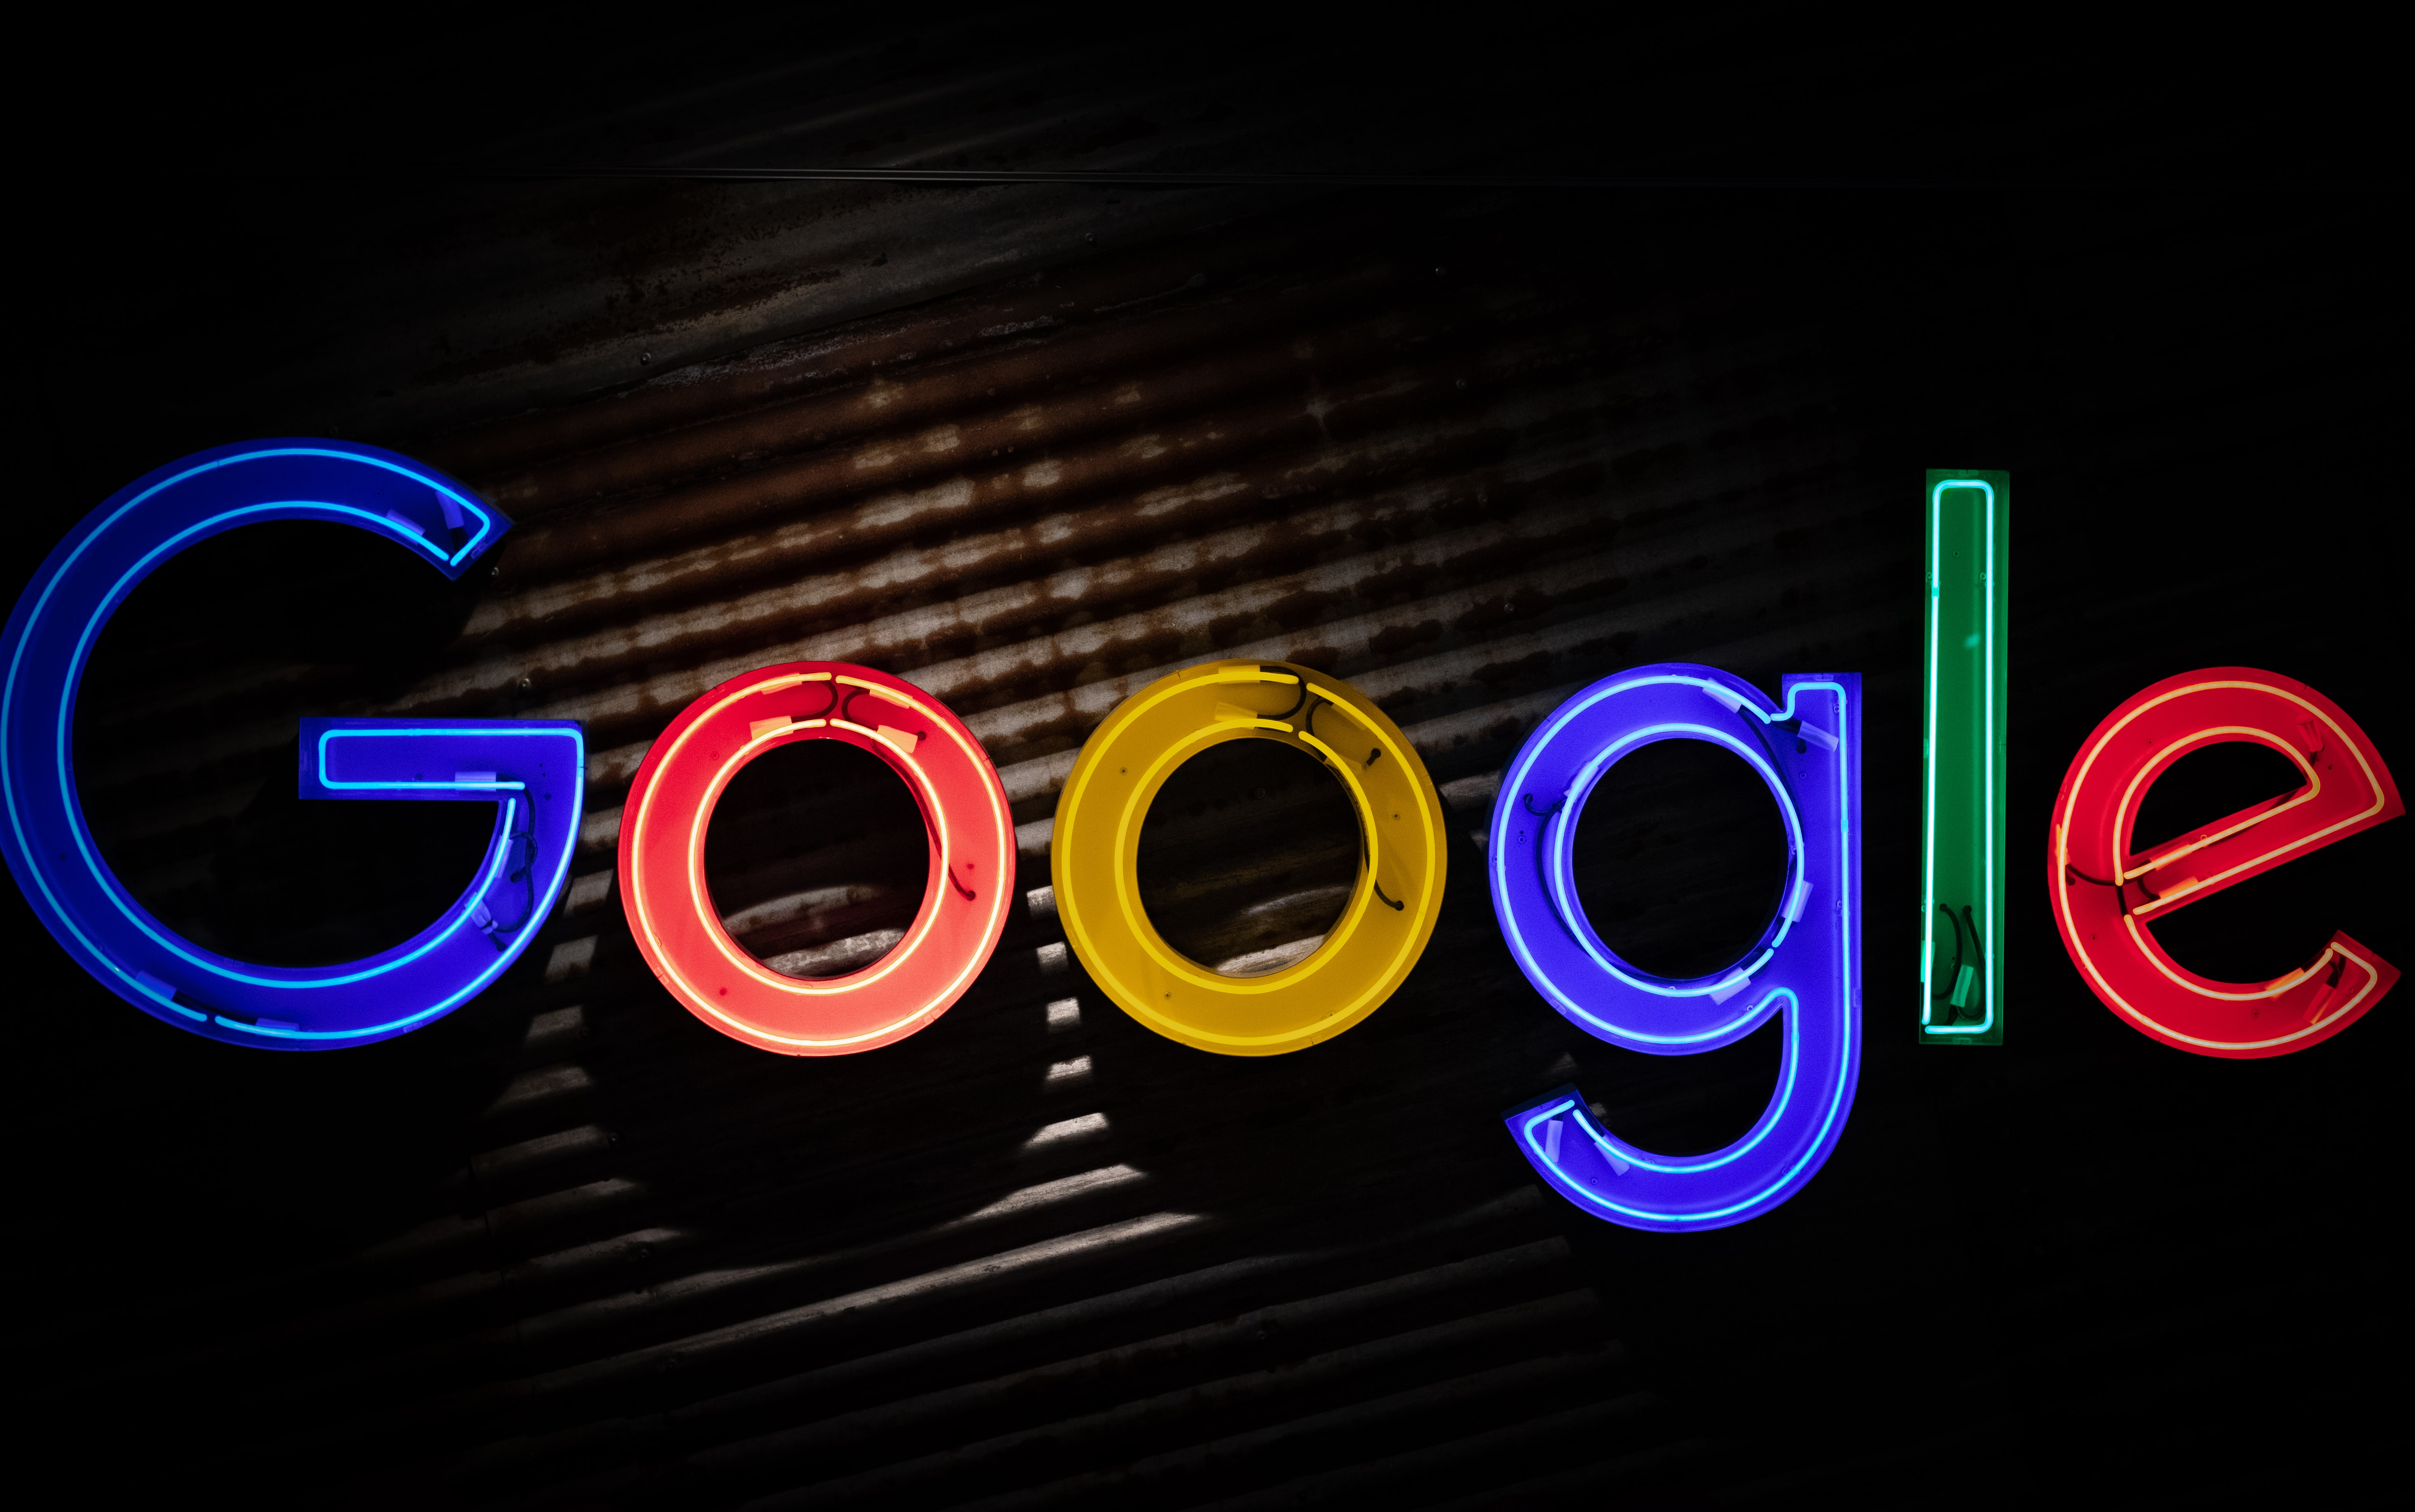 Google forced to show Search Engine selection screen